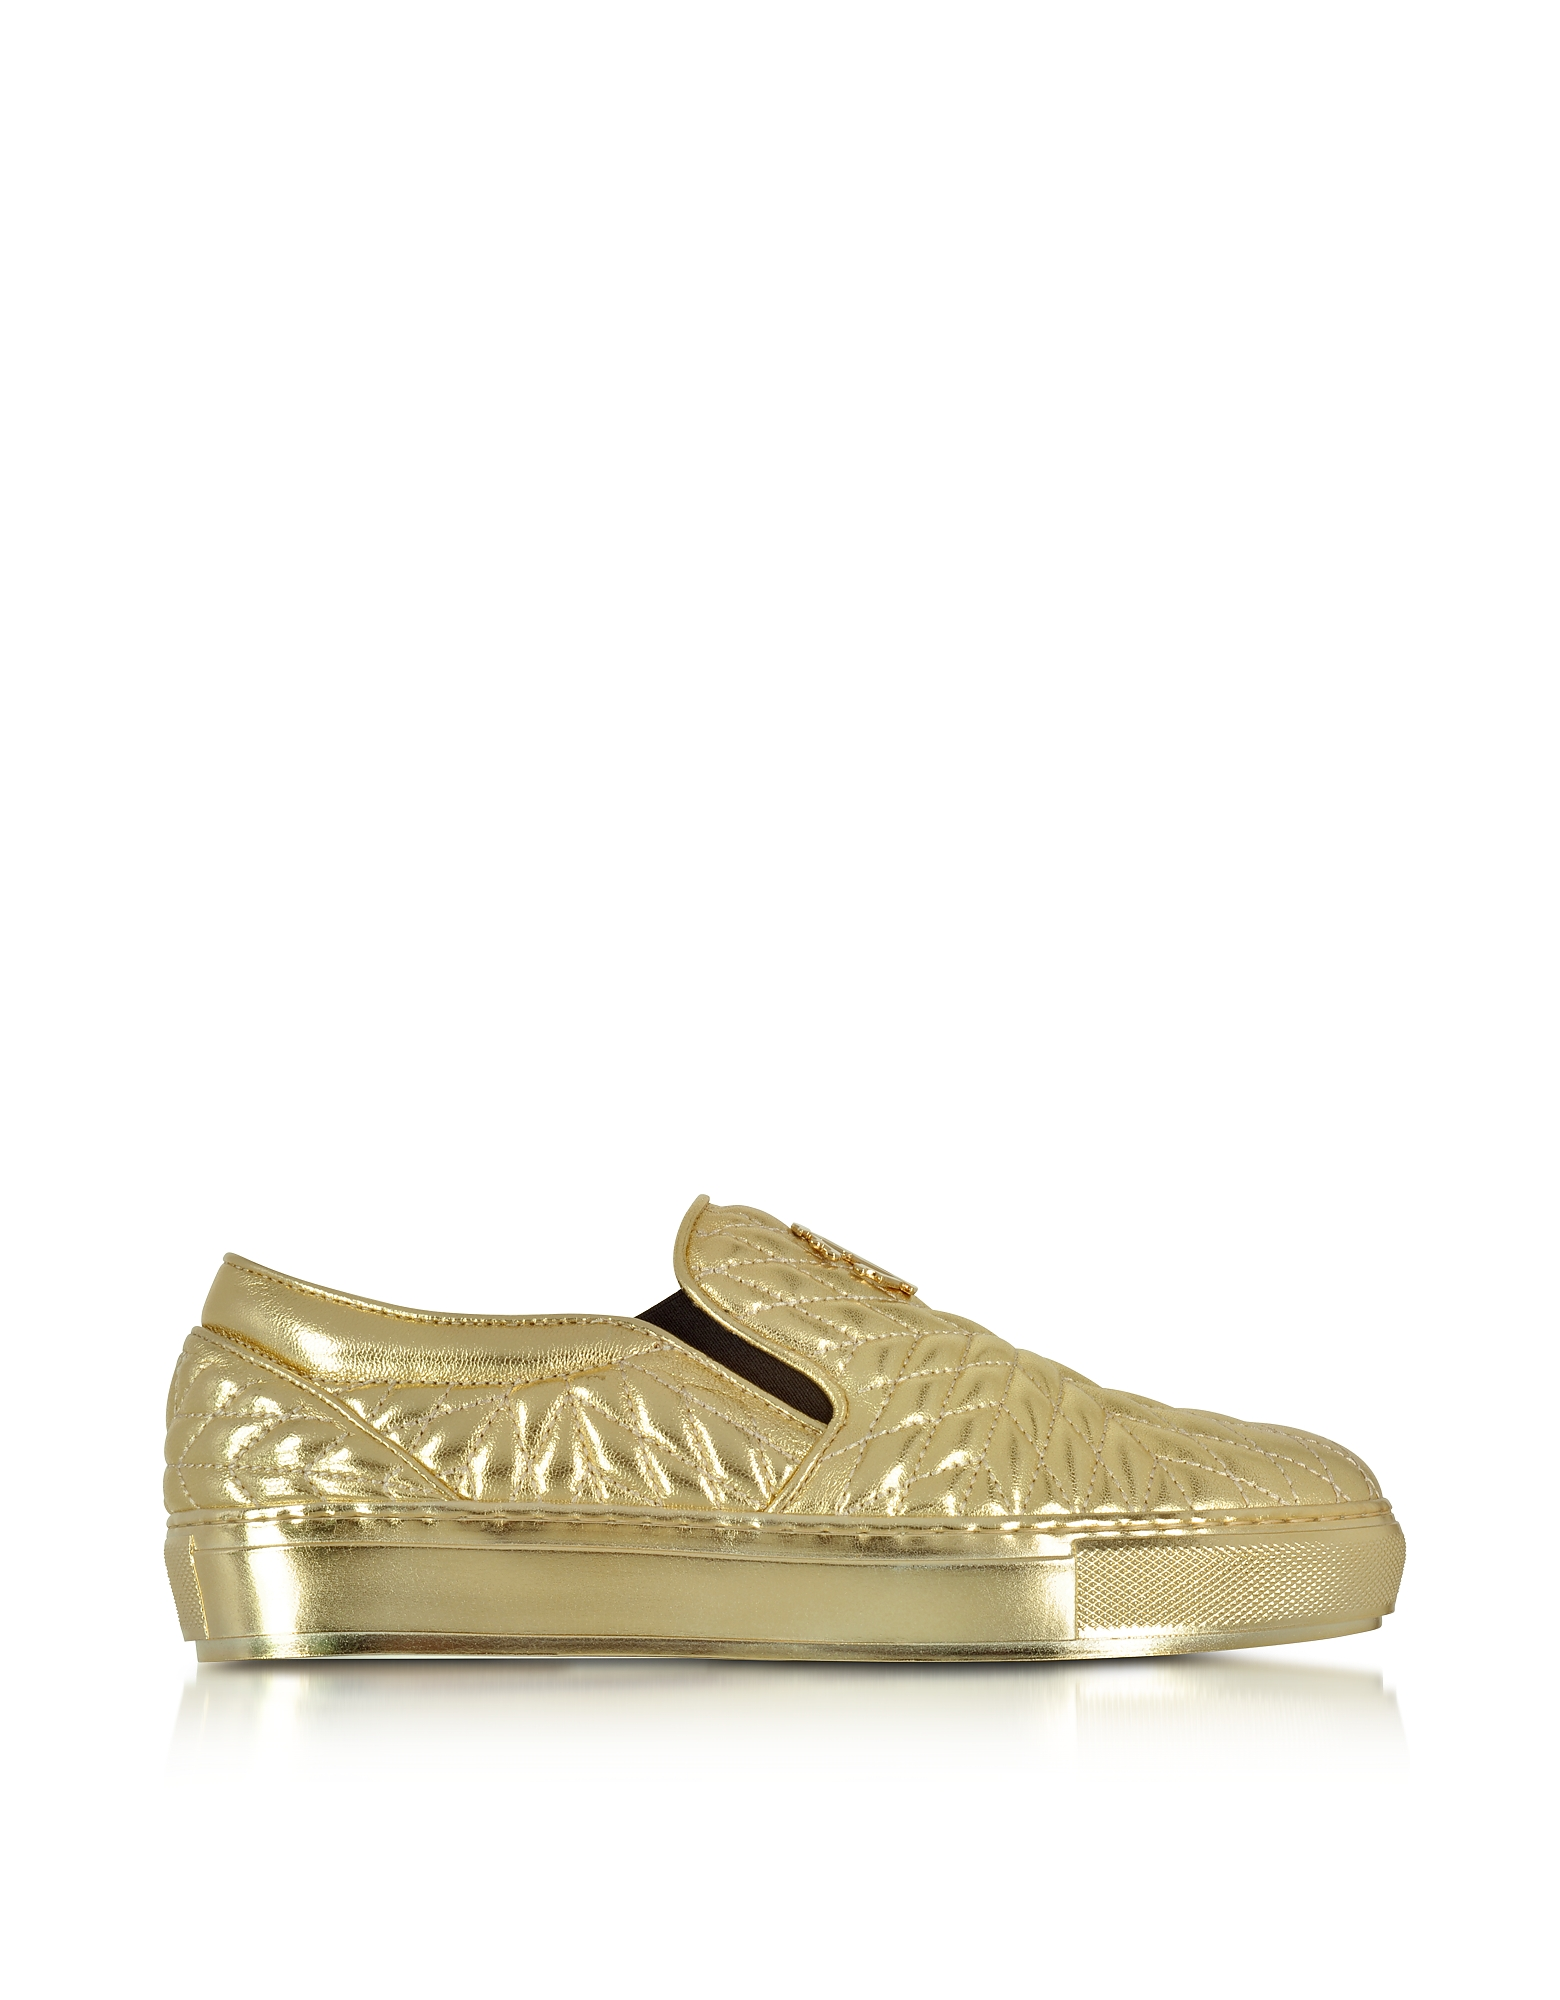 Roberto Cavalli Shoes, Laminated Nappa Star Quilted Leather Slip On Sneakers